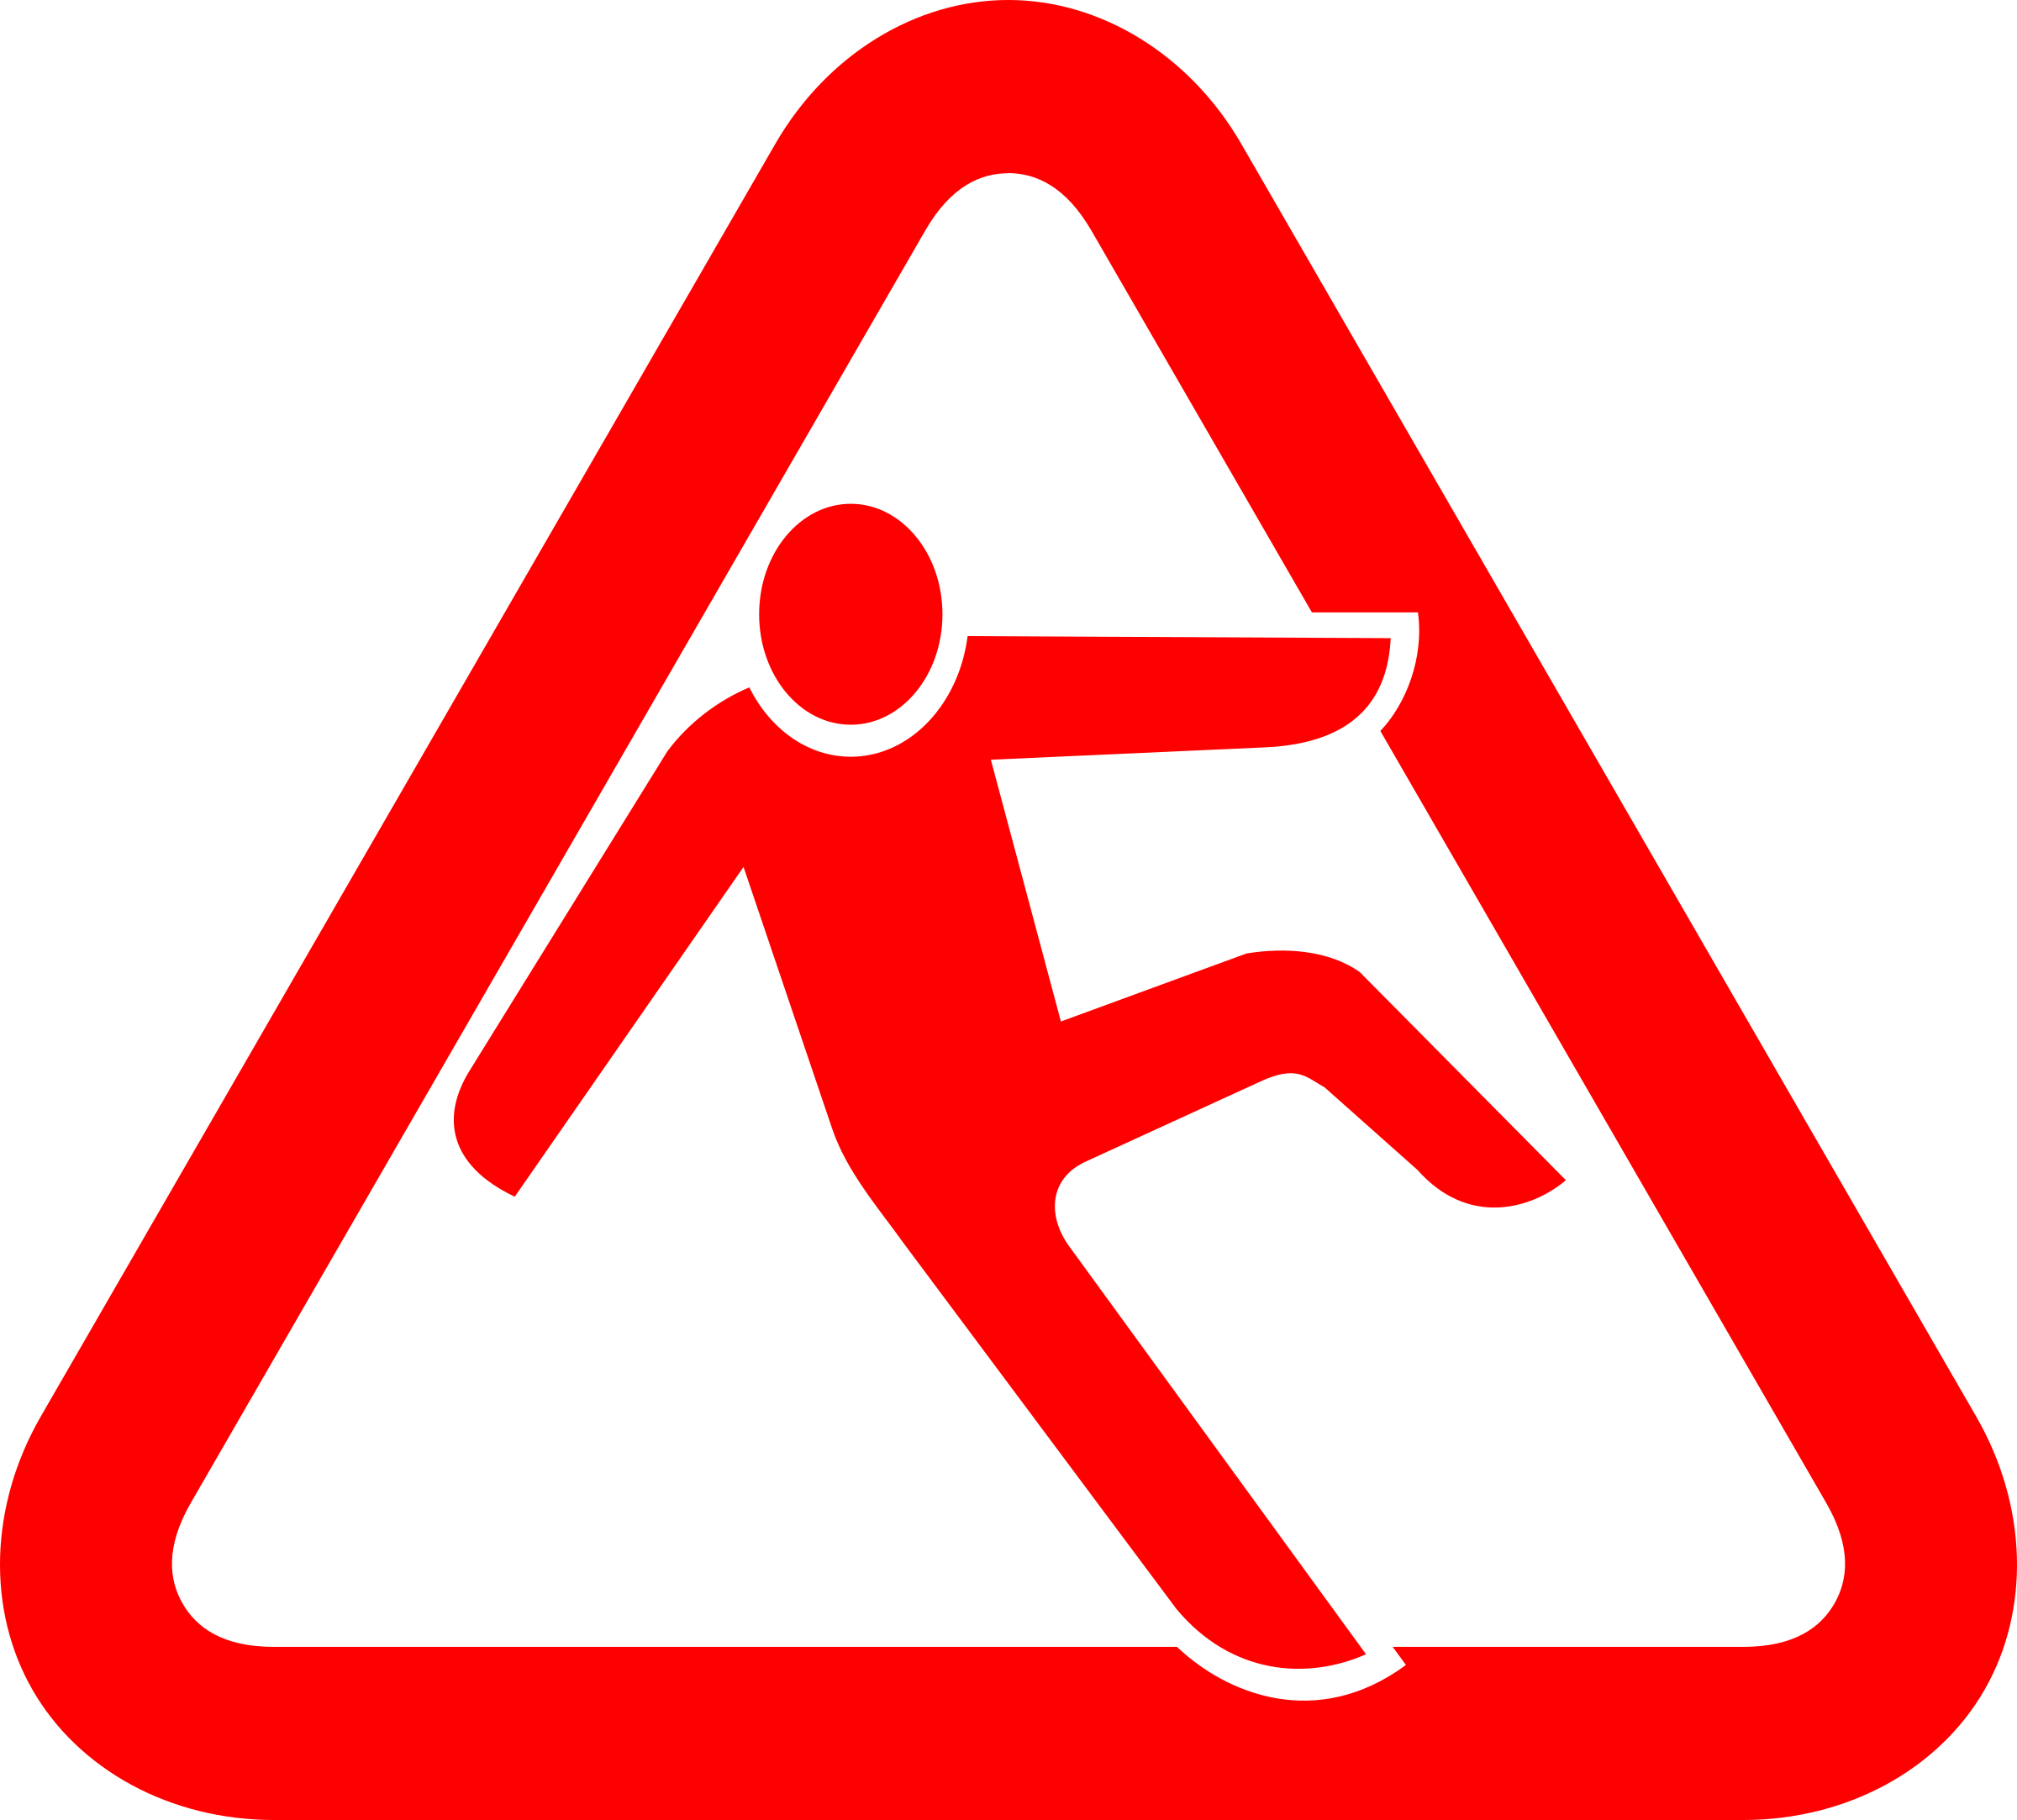 Danger floor icons png. Wet clipart wet thing